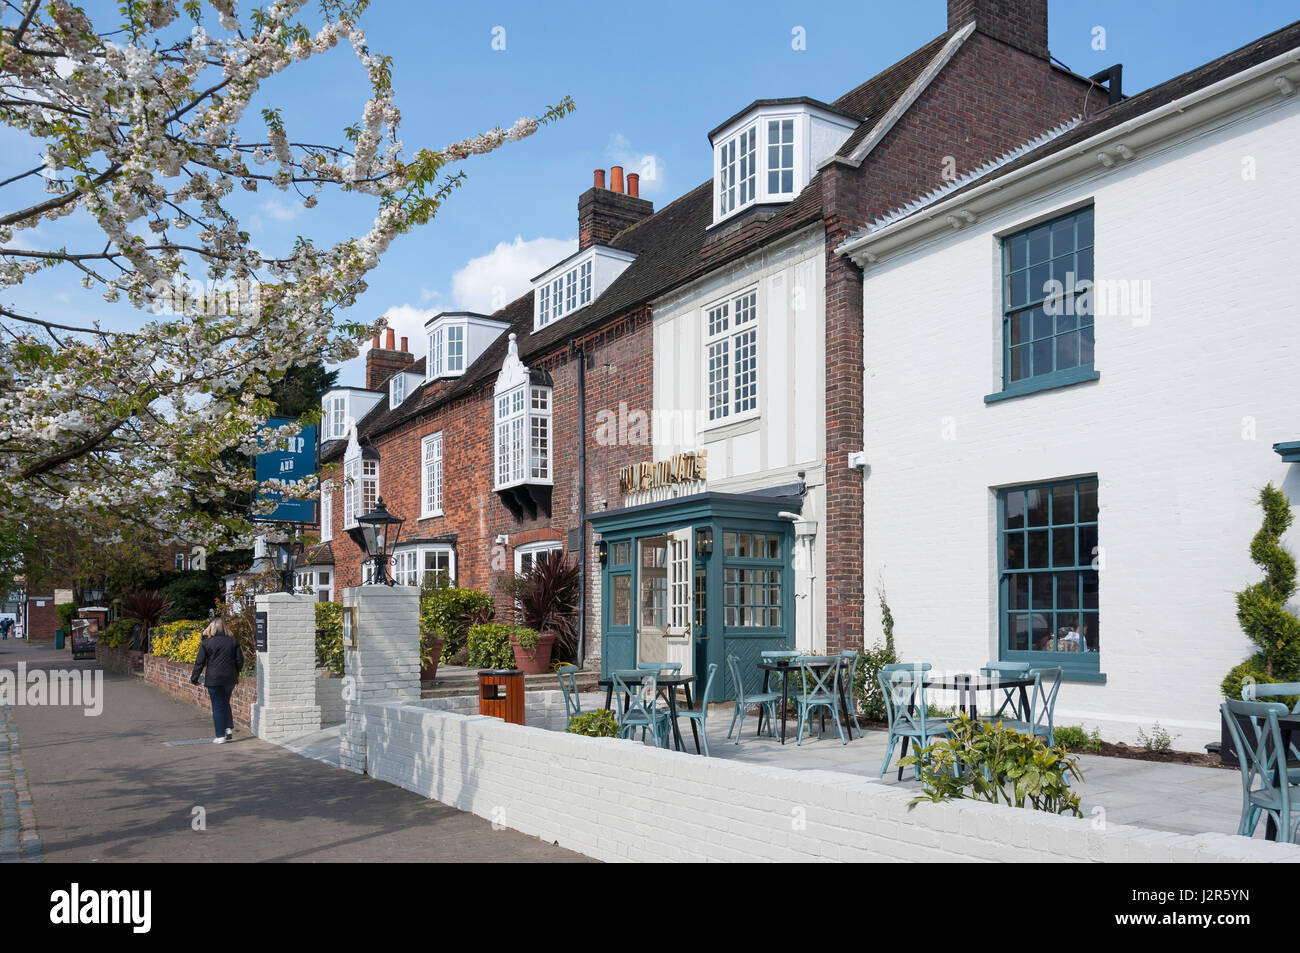 Rump and Wade Brasserie & Bar, Cromwell Hotel, High Street, Old Town, Stevenage, Hertfordshire, England, United - Stock Image